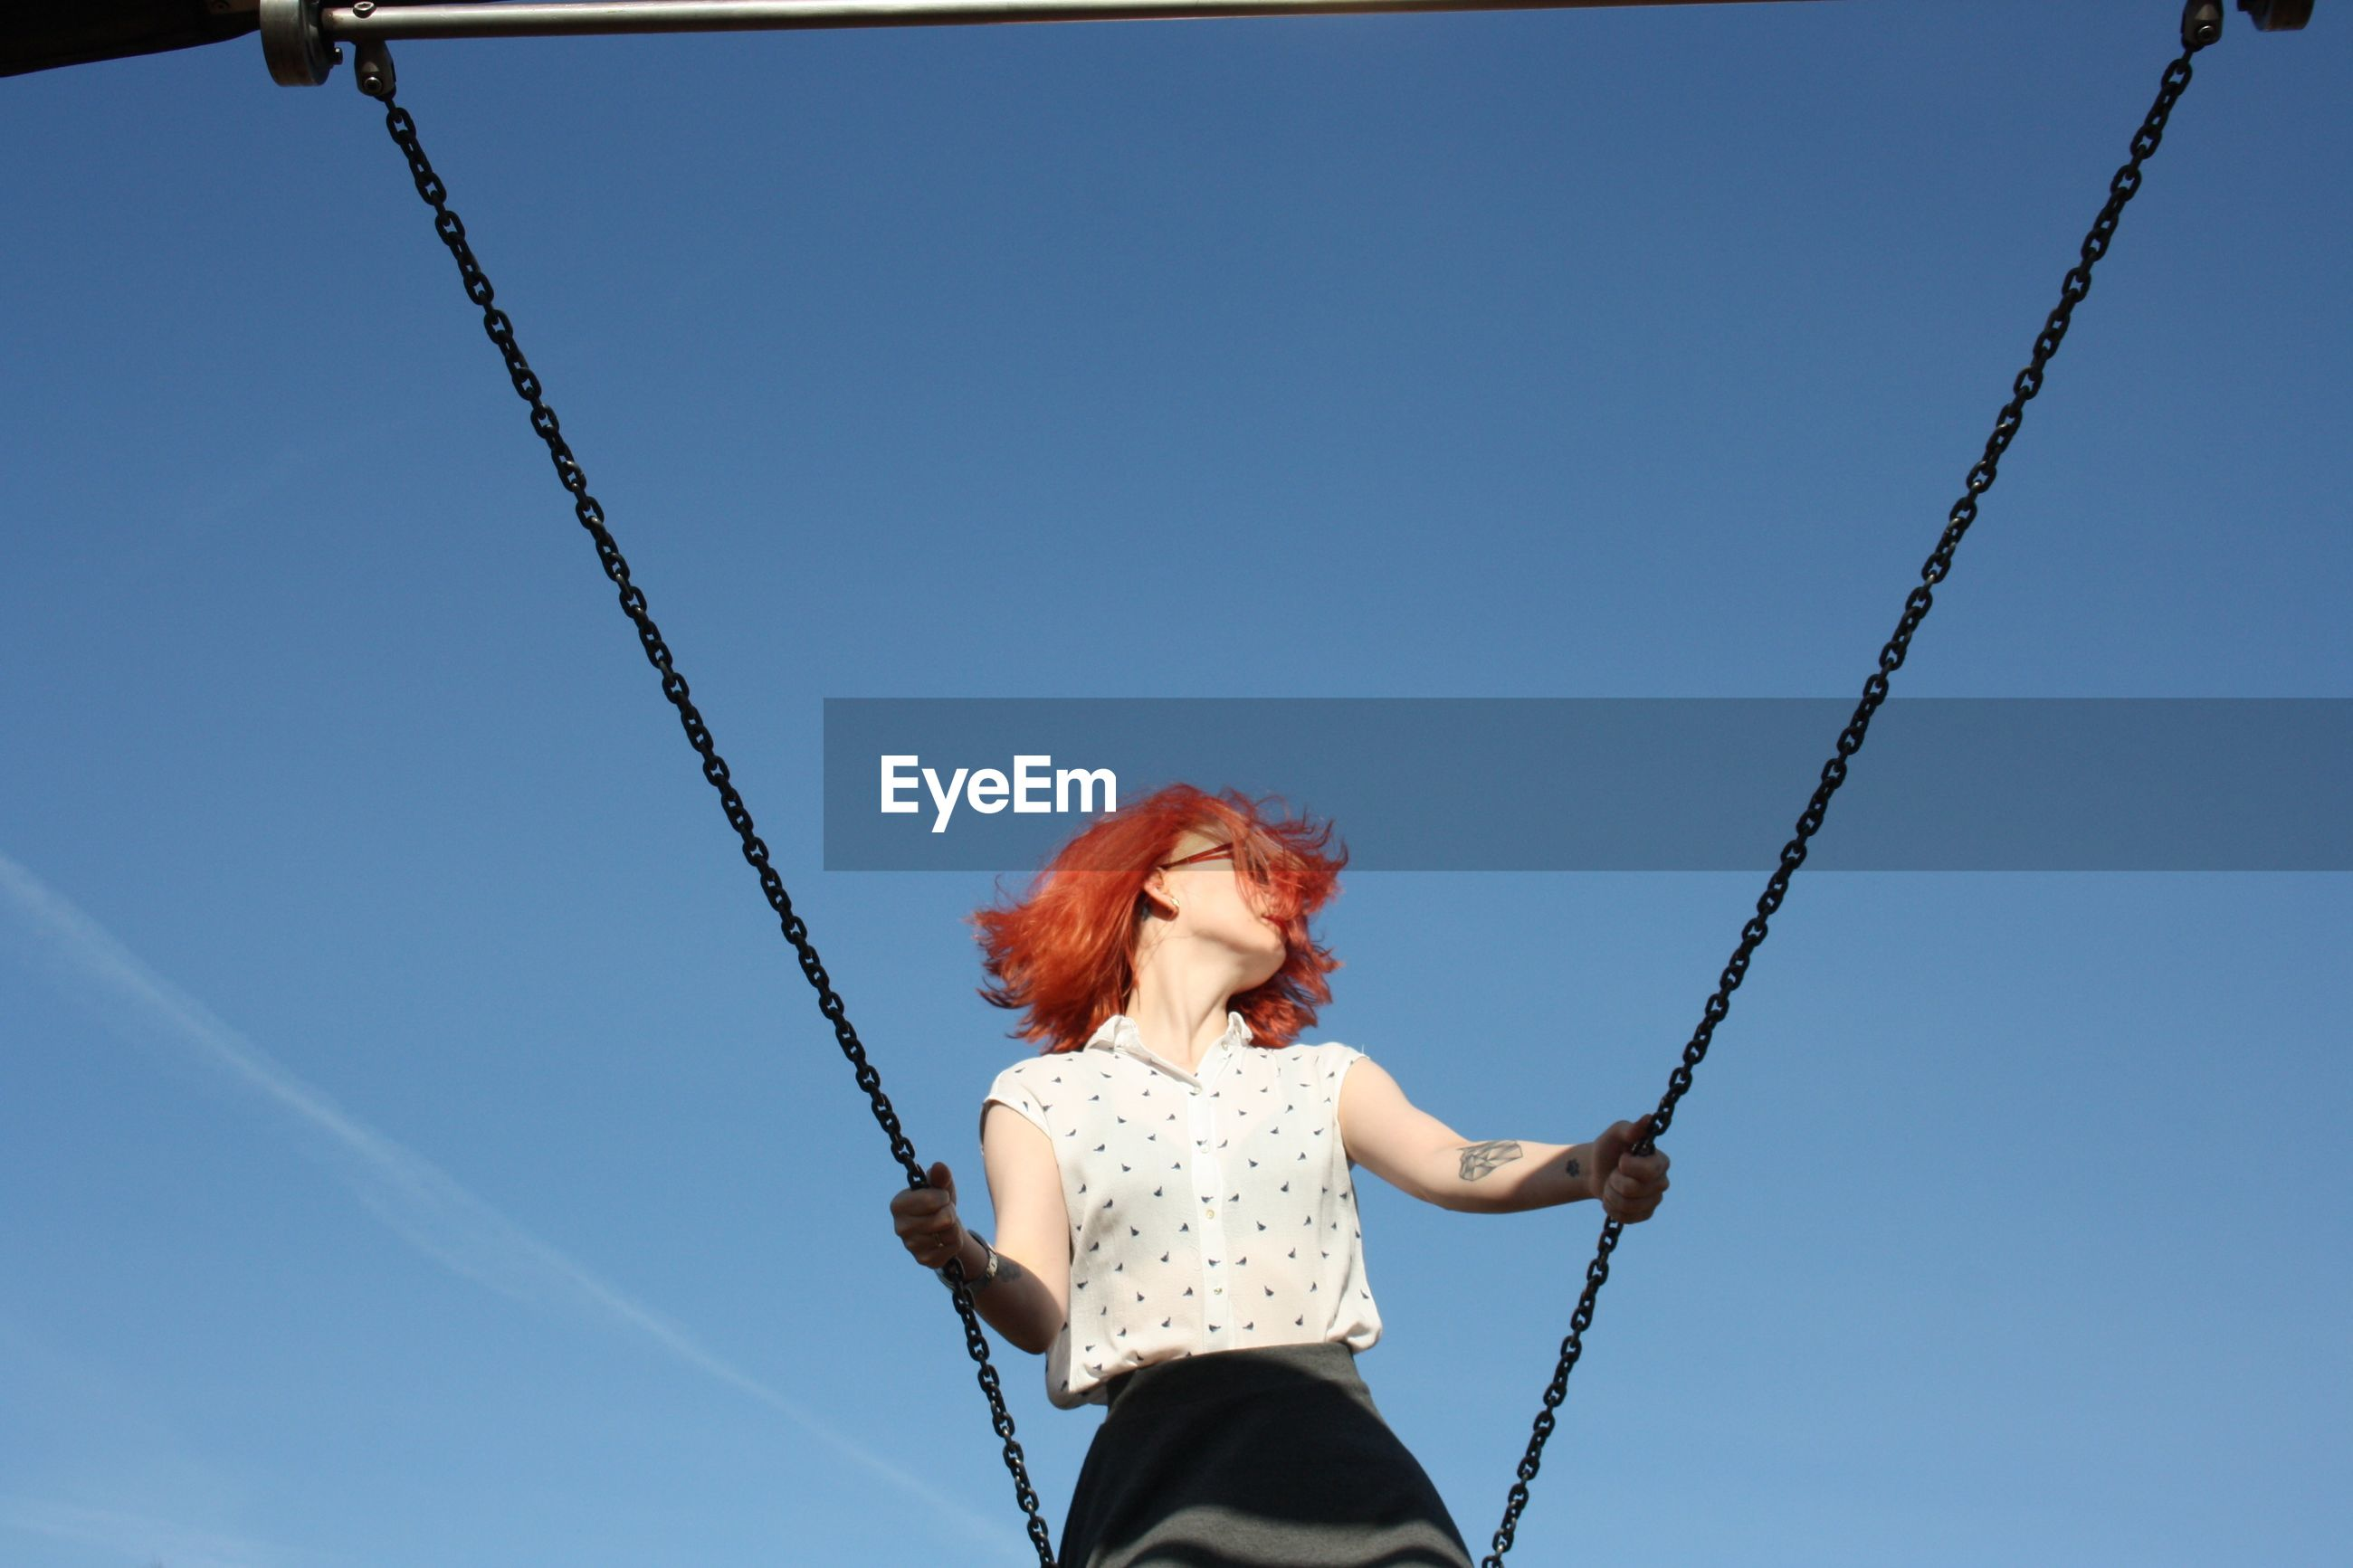 Young woman on swing against sky